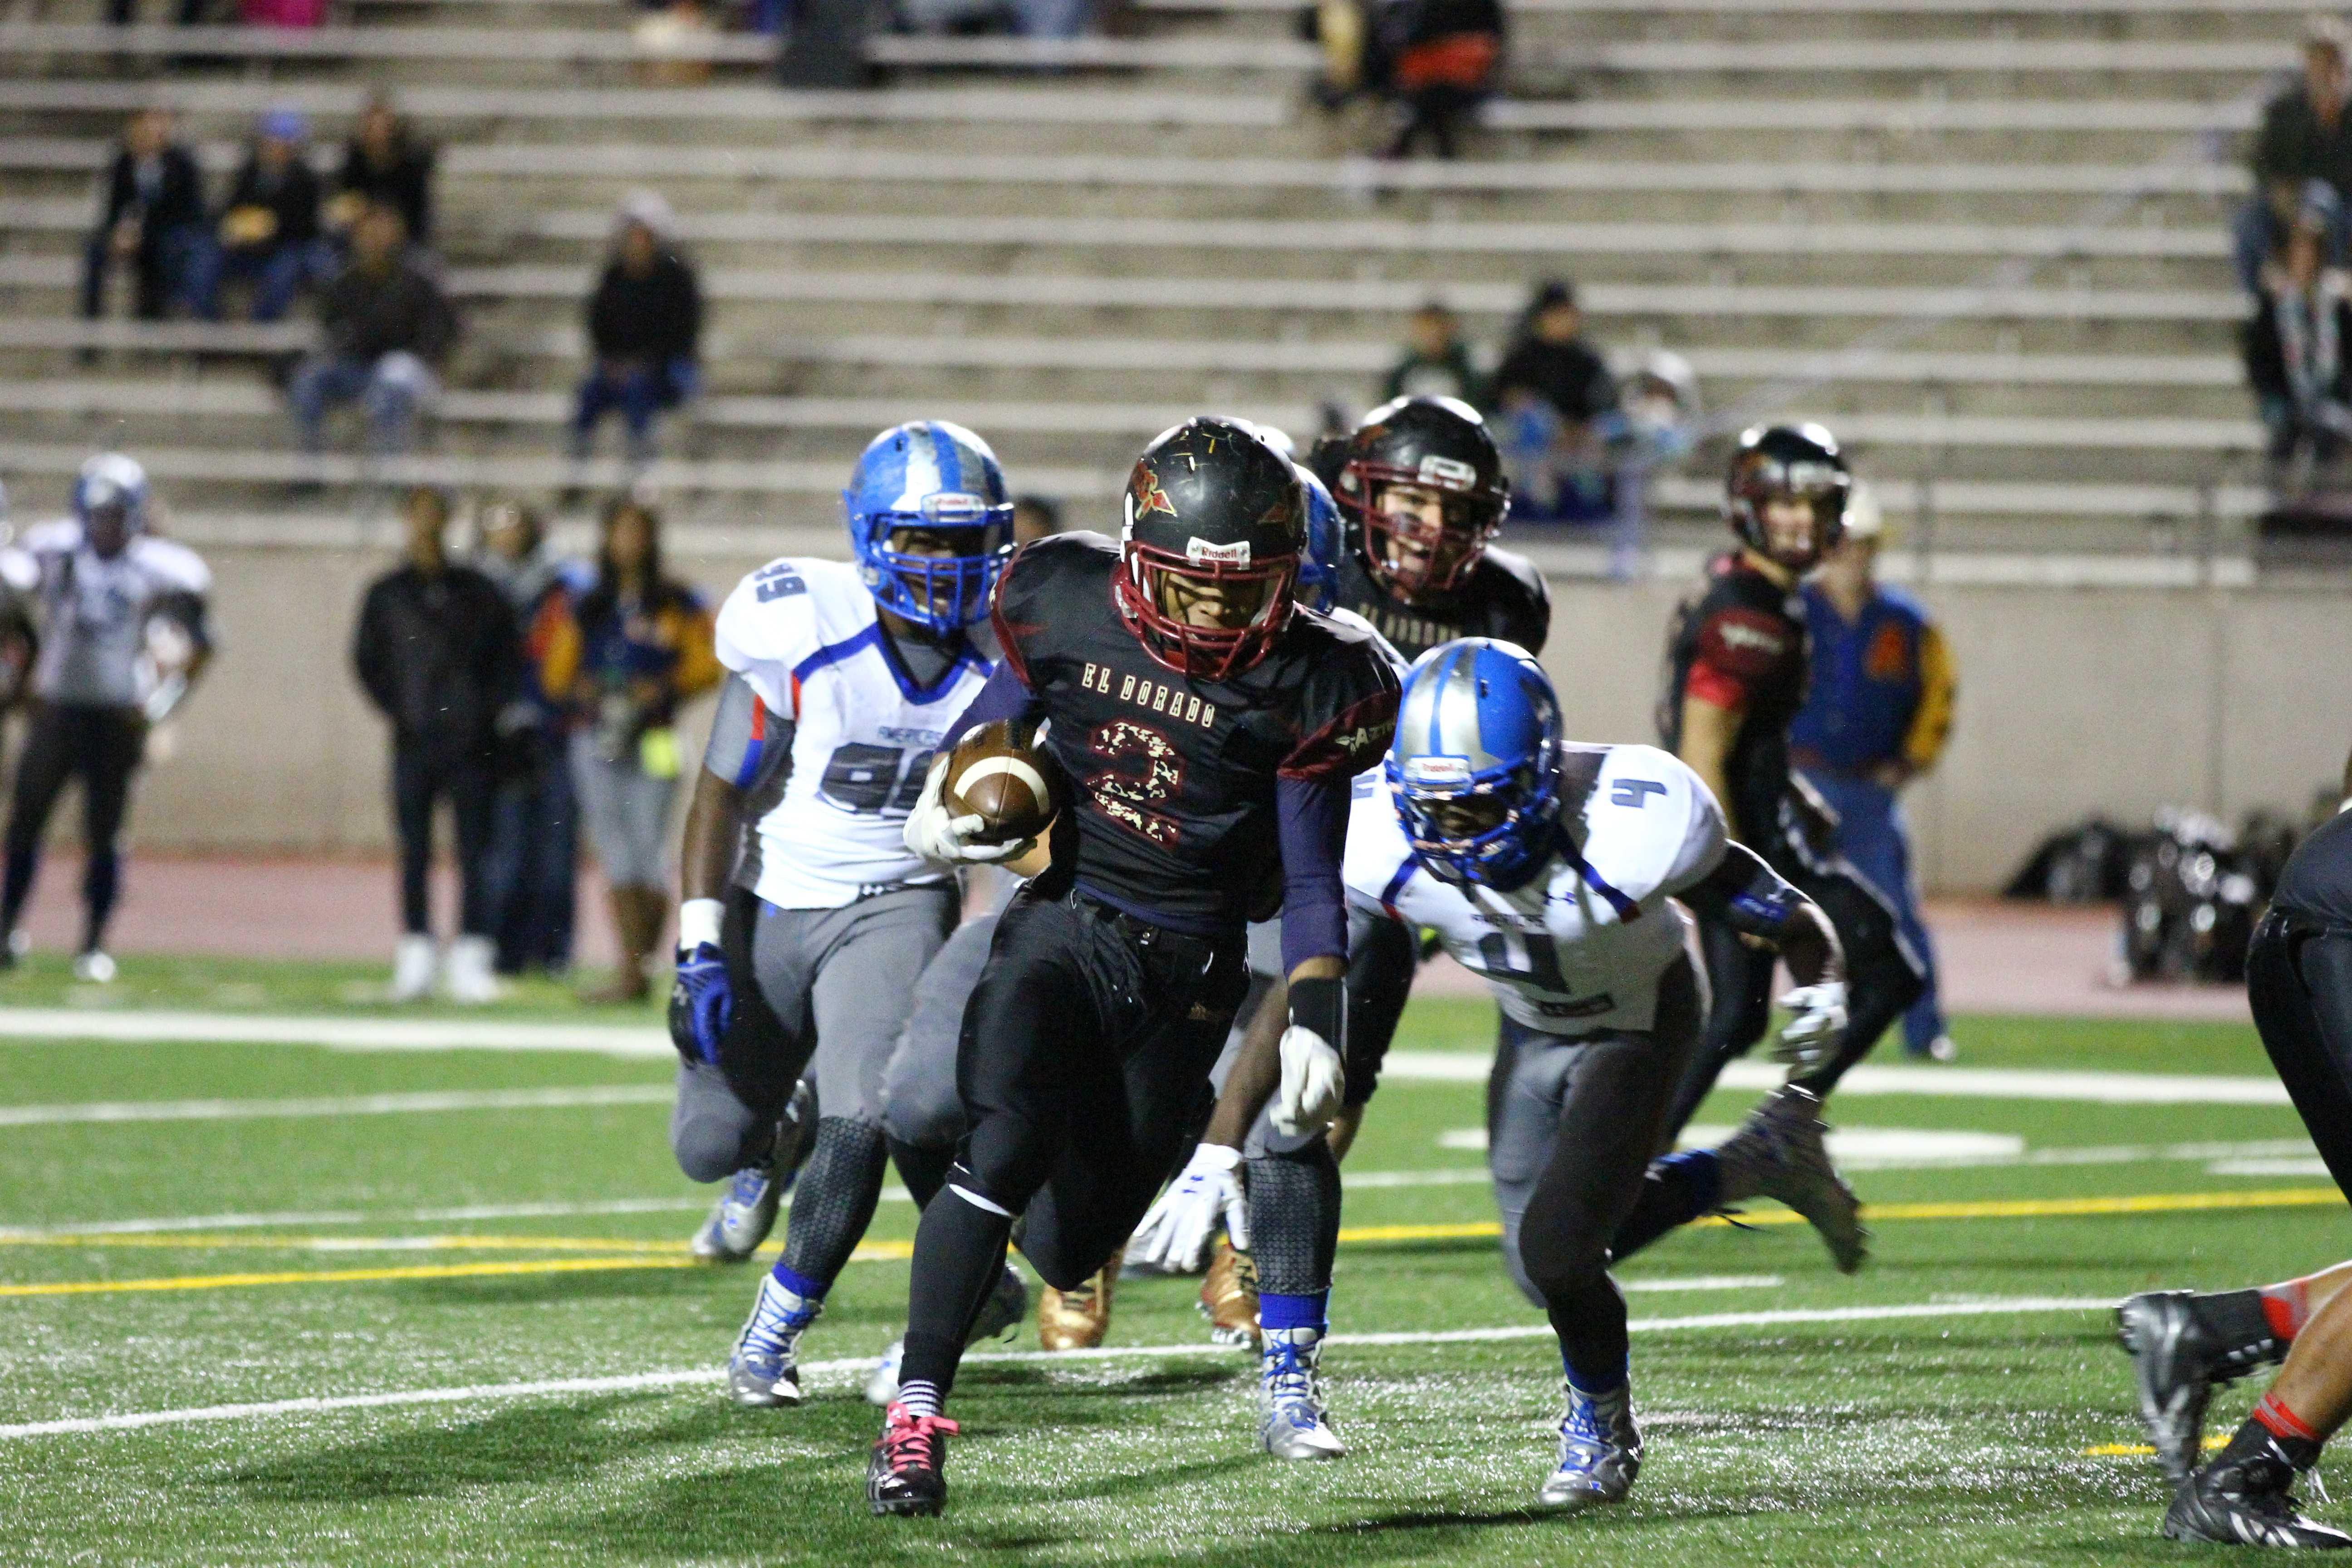 Aztecs head to playoffs in Midland